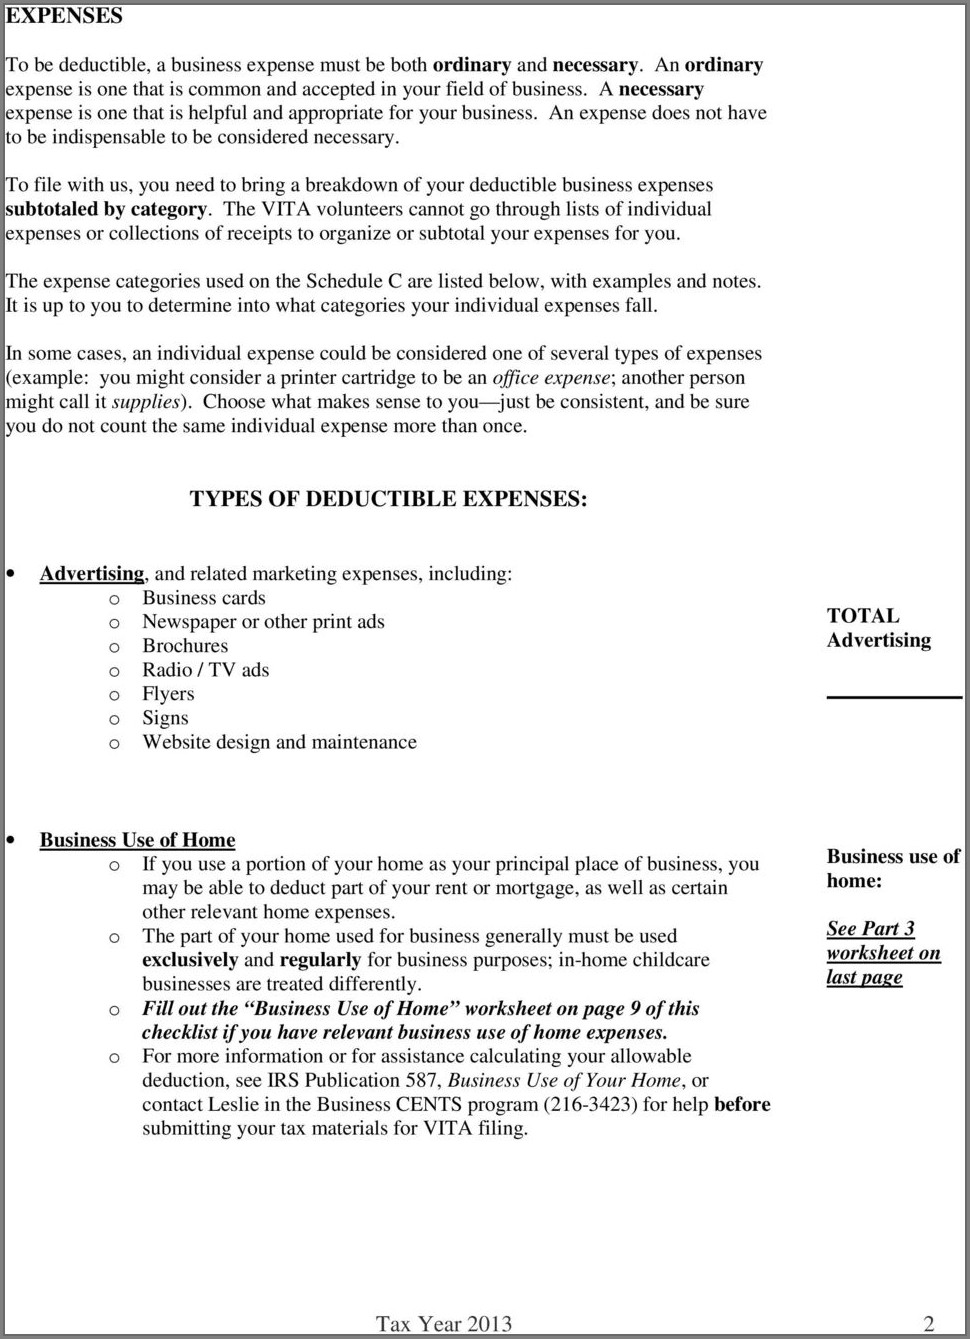 Tax Worksheet For Schedule C